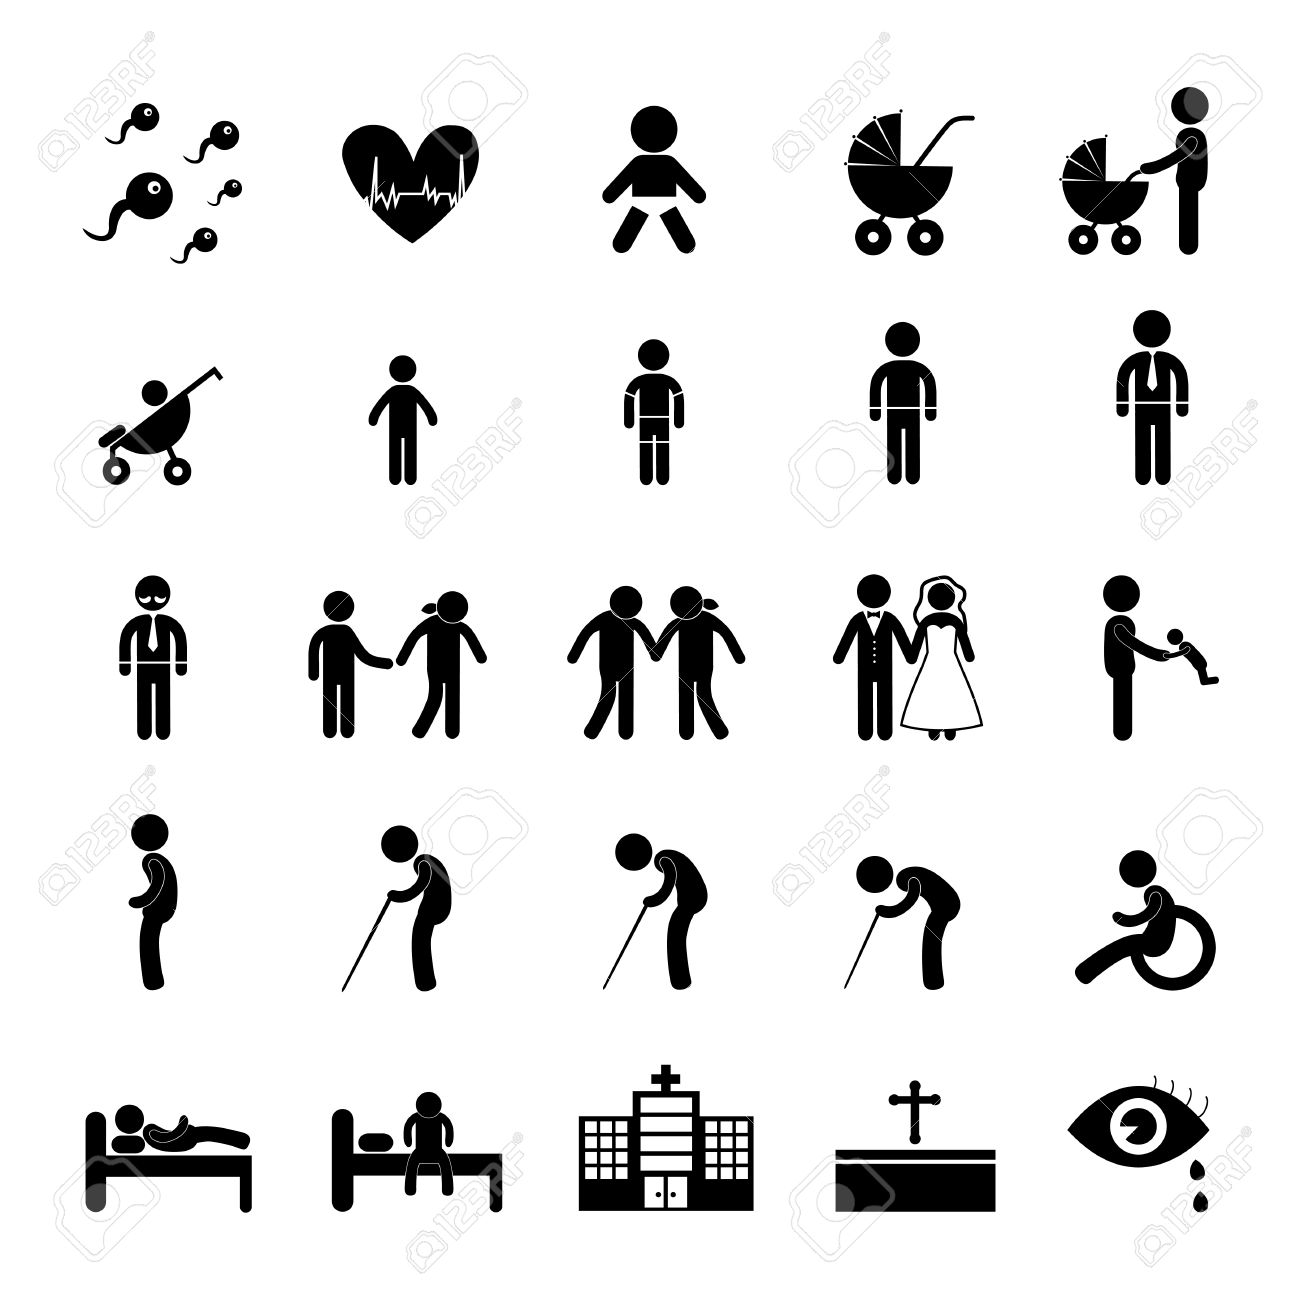 Vector Basic Icon Set For Human Life Royalty Free Cliparts, Vectors ...